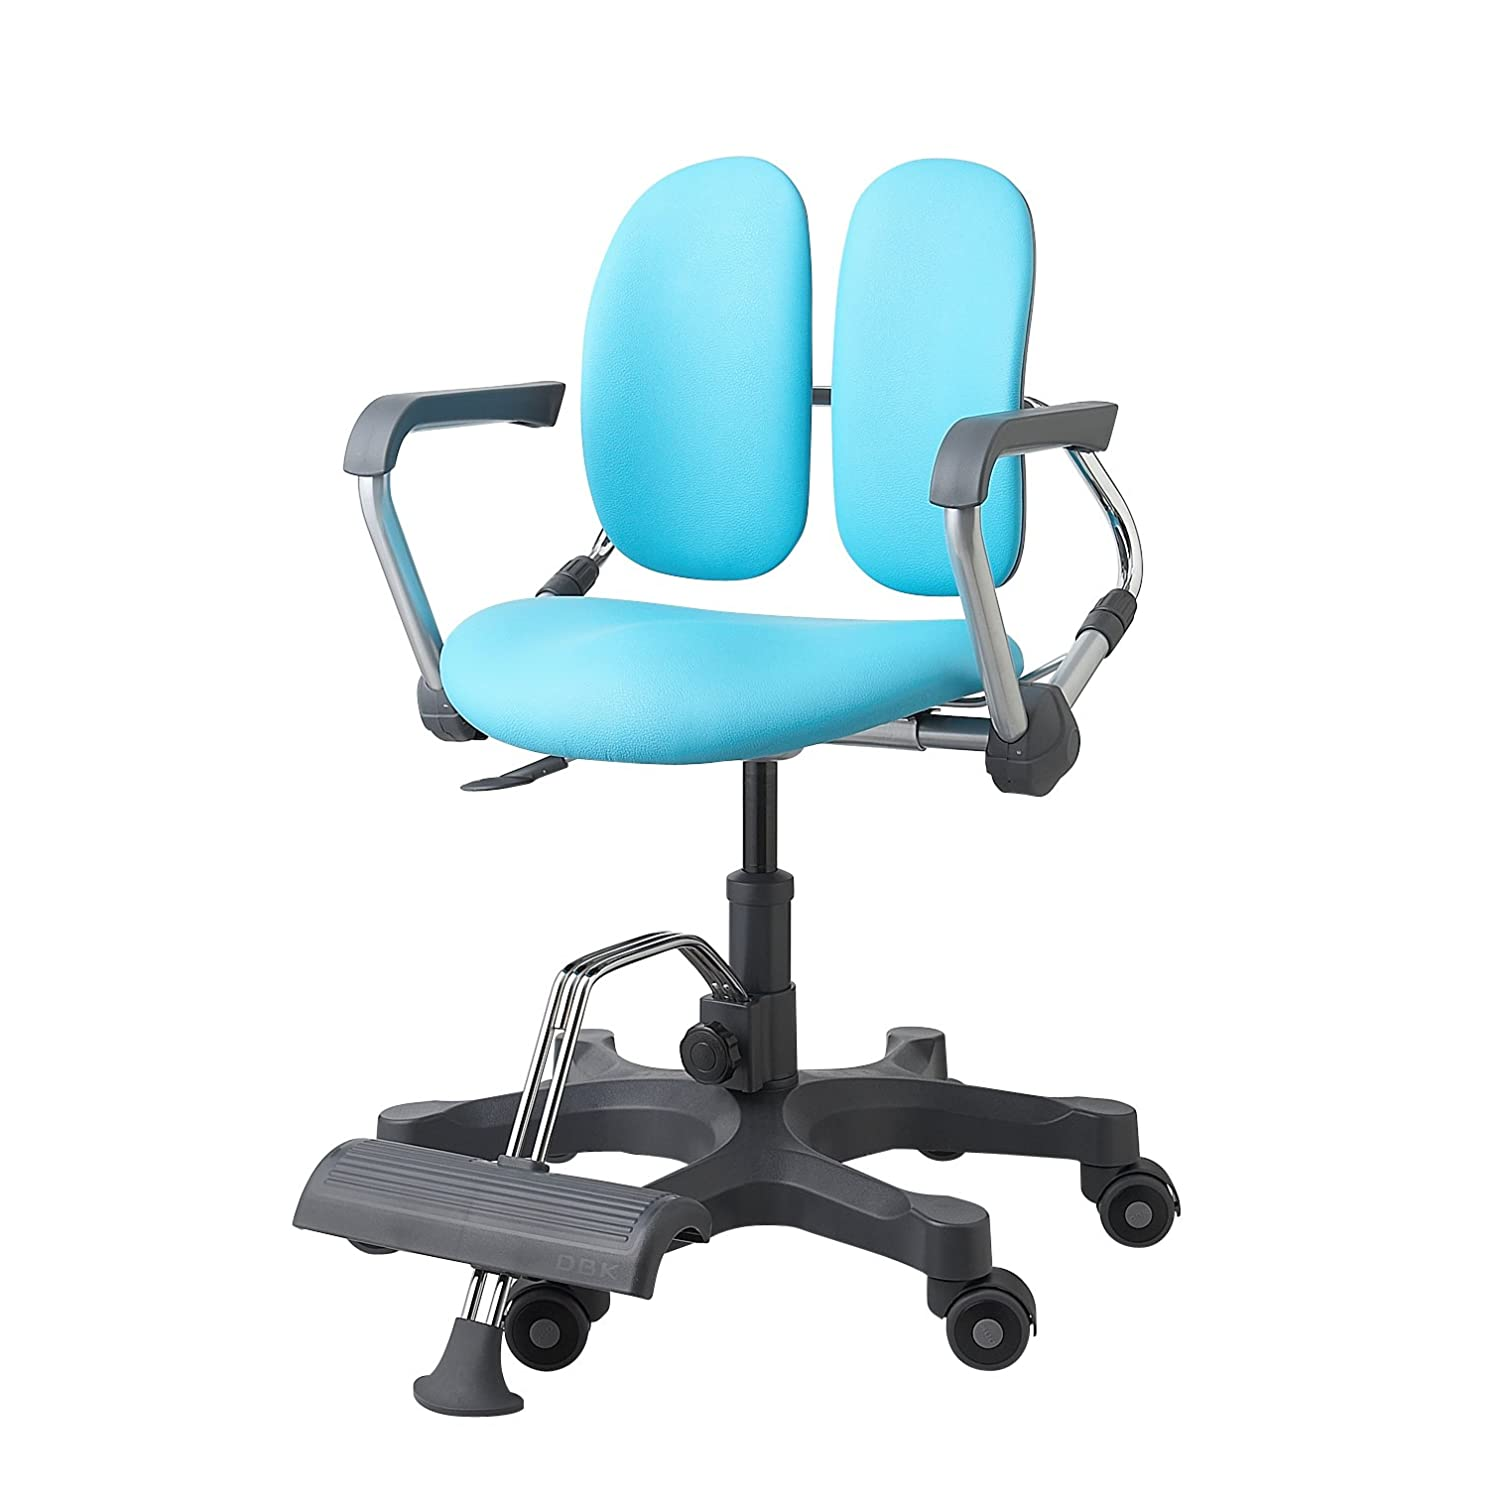 DUOREST Kids Ergonomic Student Desk Chair The Assistive Technology DailyTh